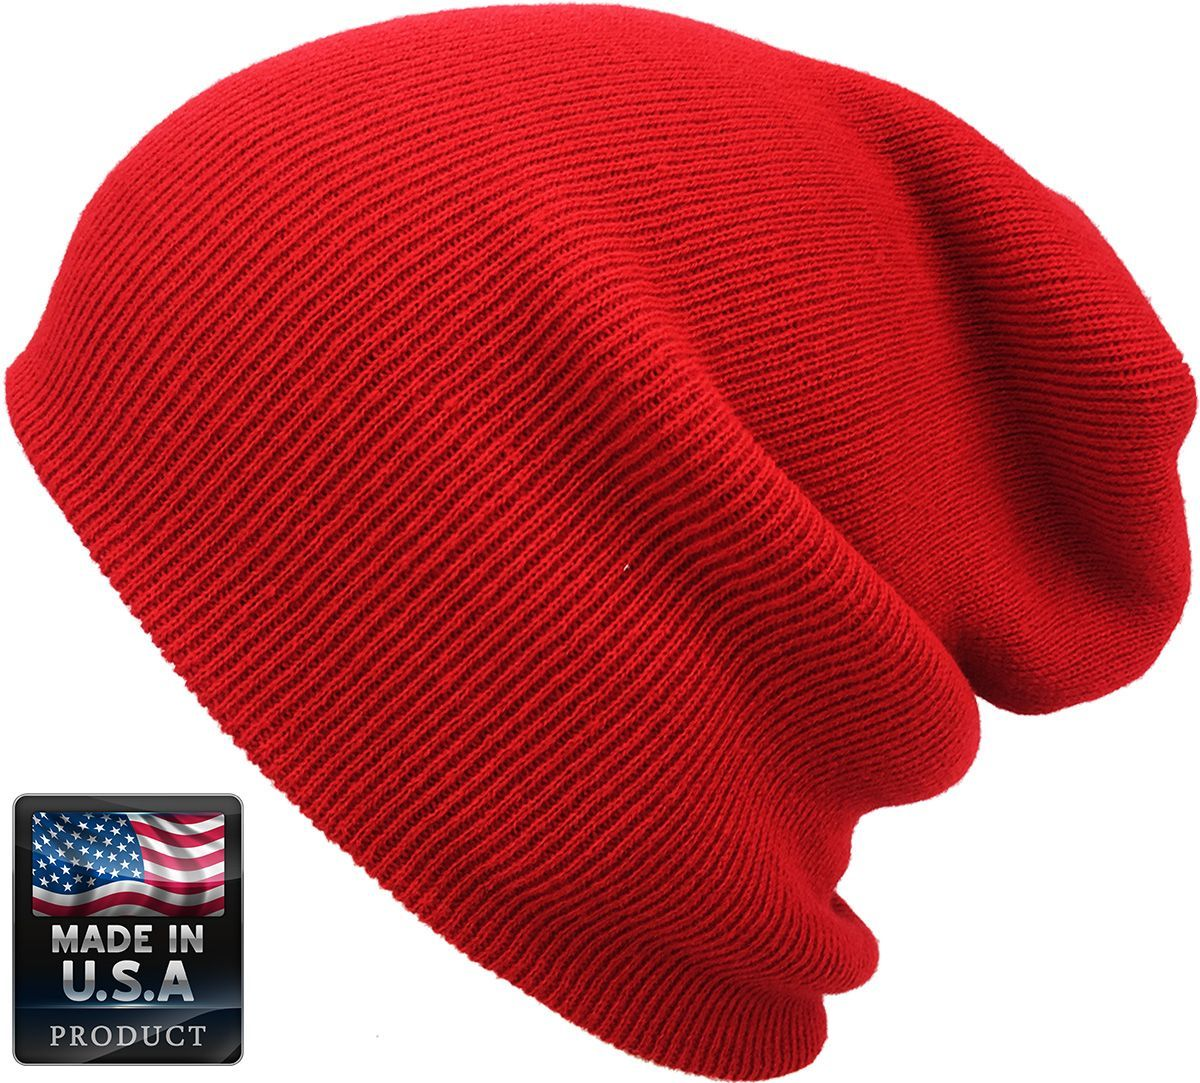 ed6311973a41ff enjoy-your-day-warm-slouchy-beanie-in-red-2.jpg